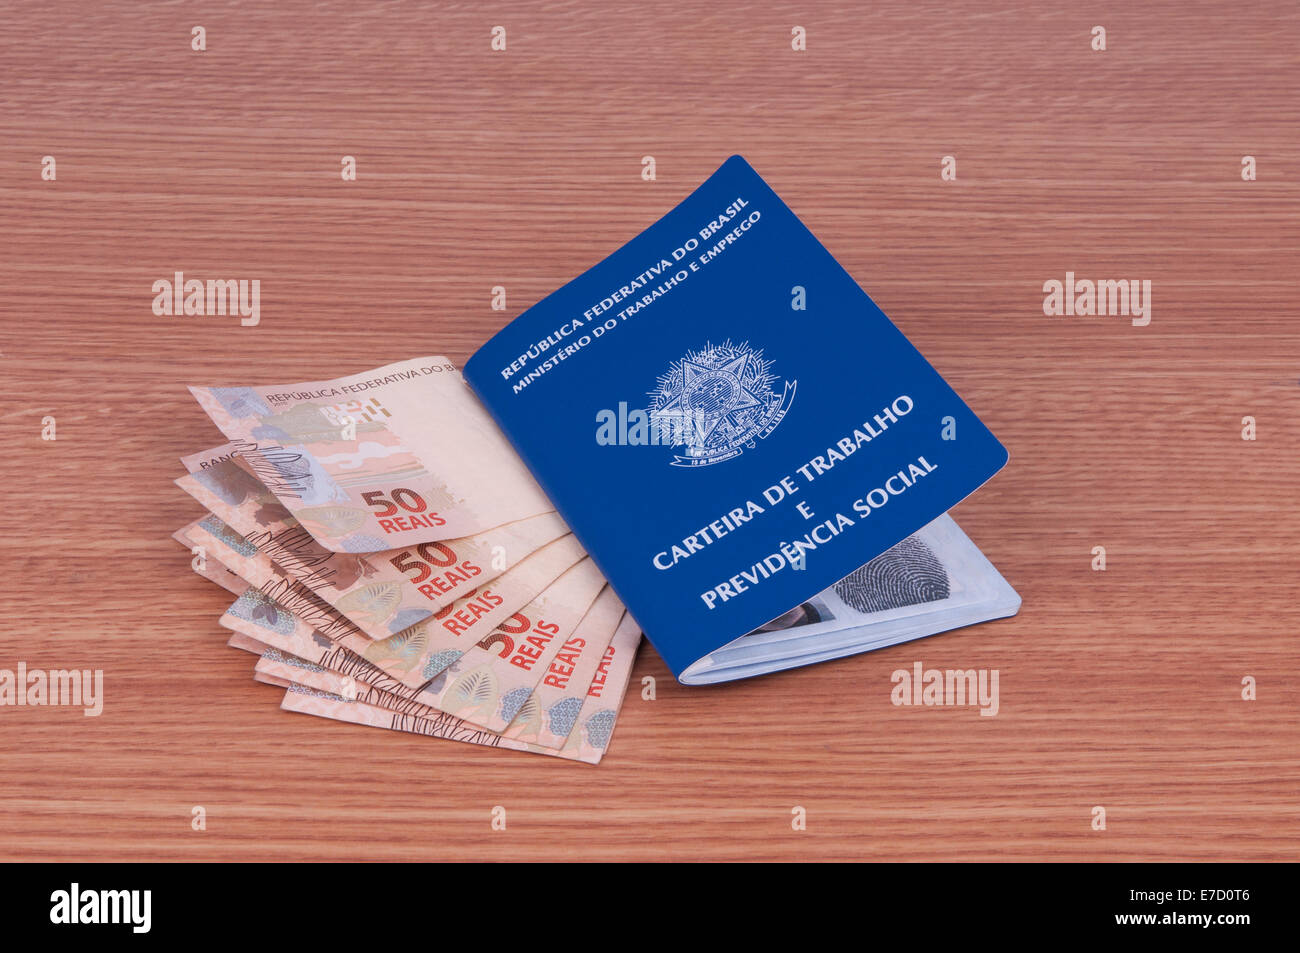 Brazilian work document and social security document (carteira de trabalho) and brazilian currency (Real) - Stock Image